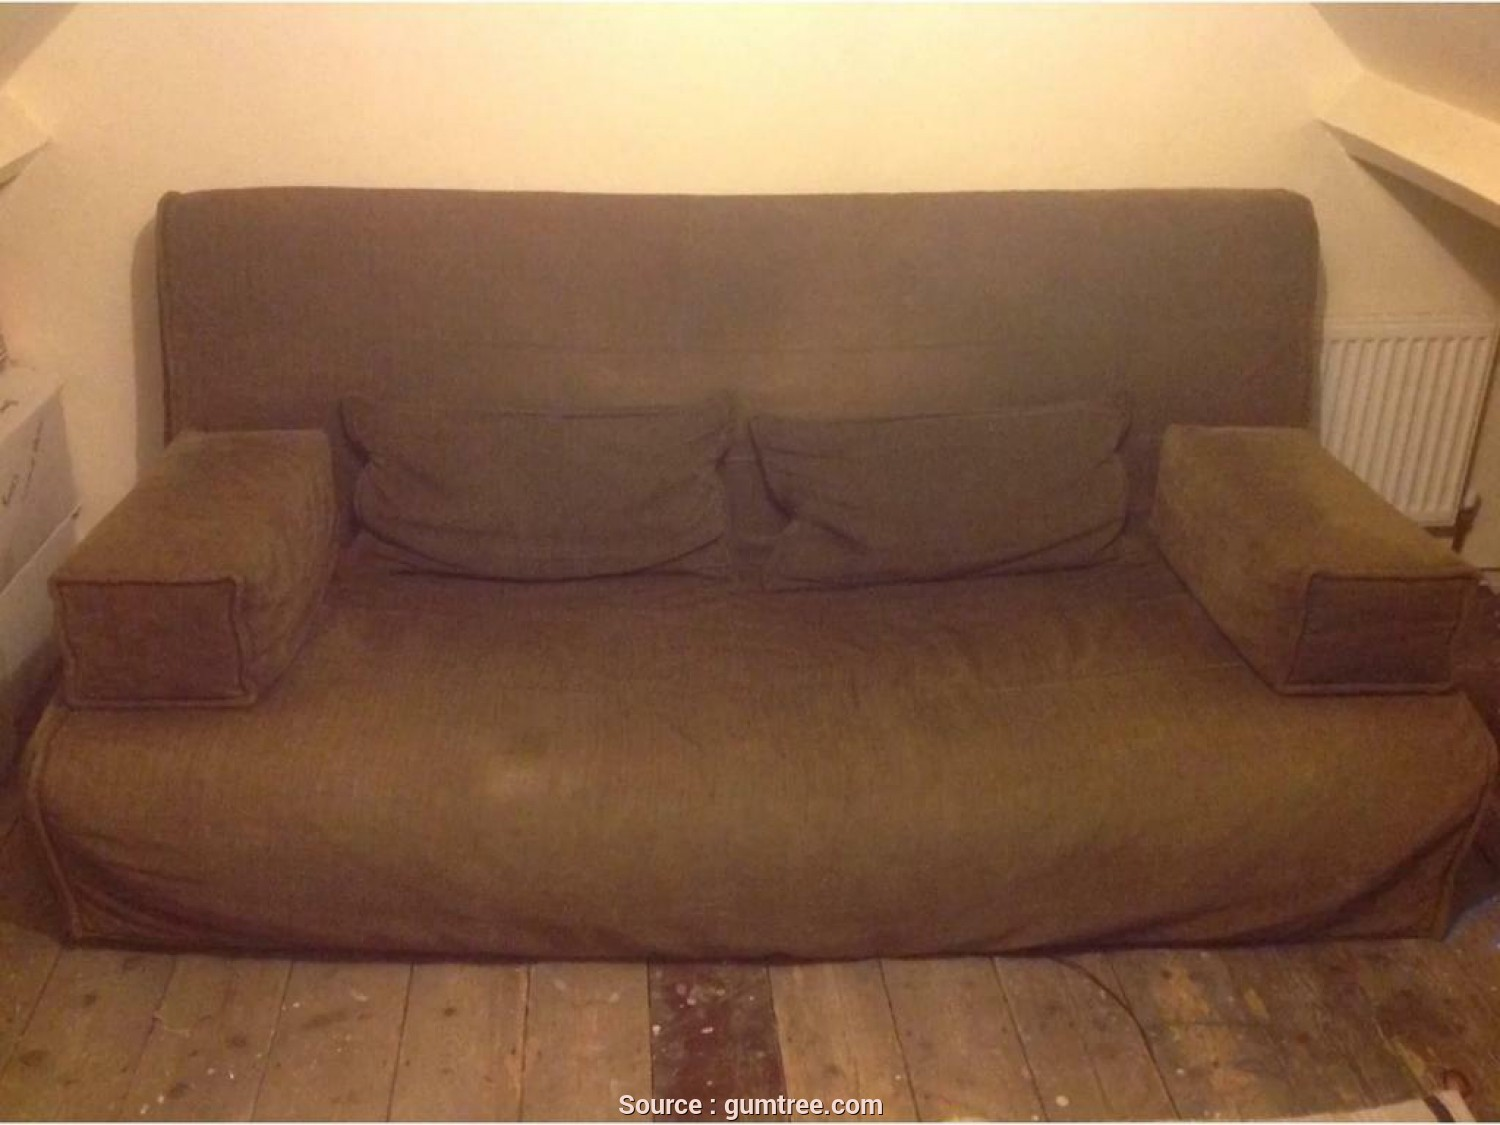 Beddinge Ikea Notice, Completare IKEA BEDDINGE 3 Seater Sofa, With LÖVÅS Mattress, 2, Cushions, In Chippenham, Wiltshire, Gumtree